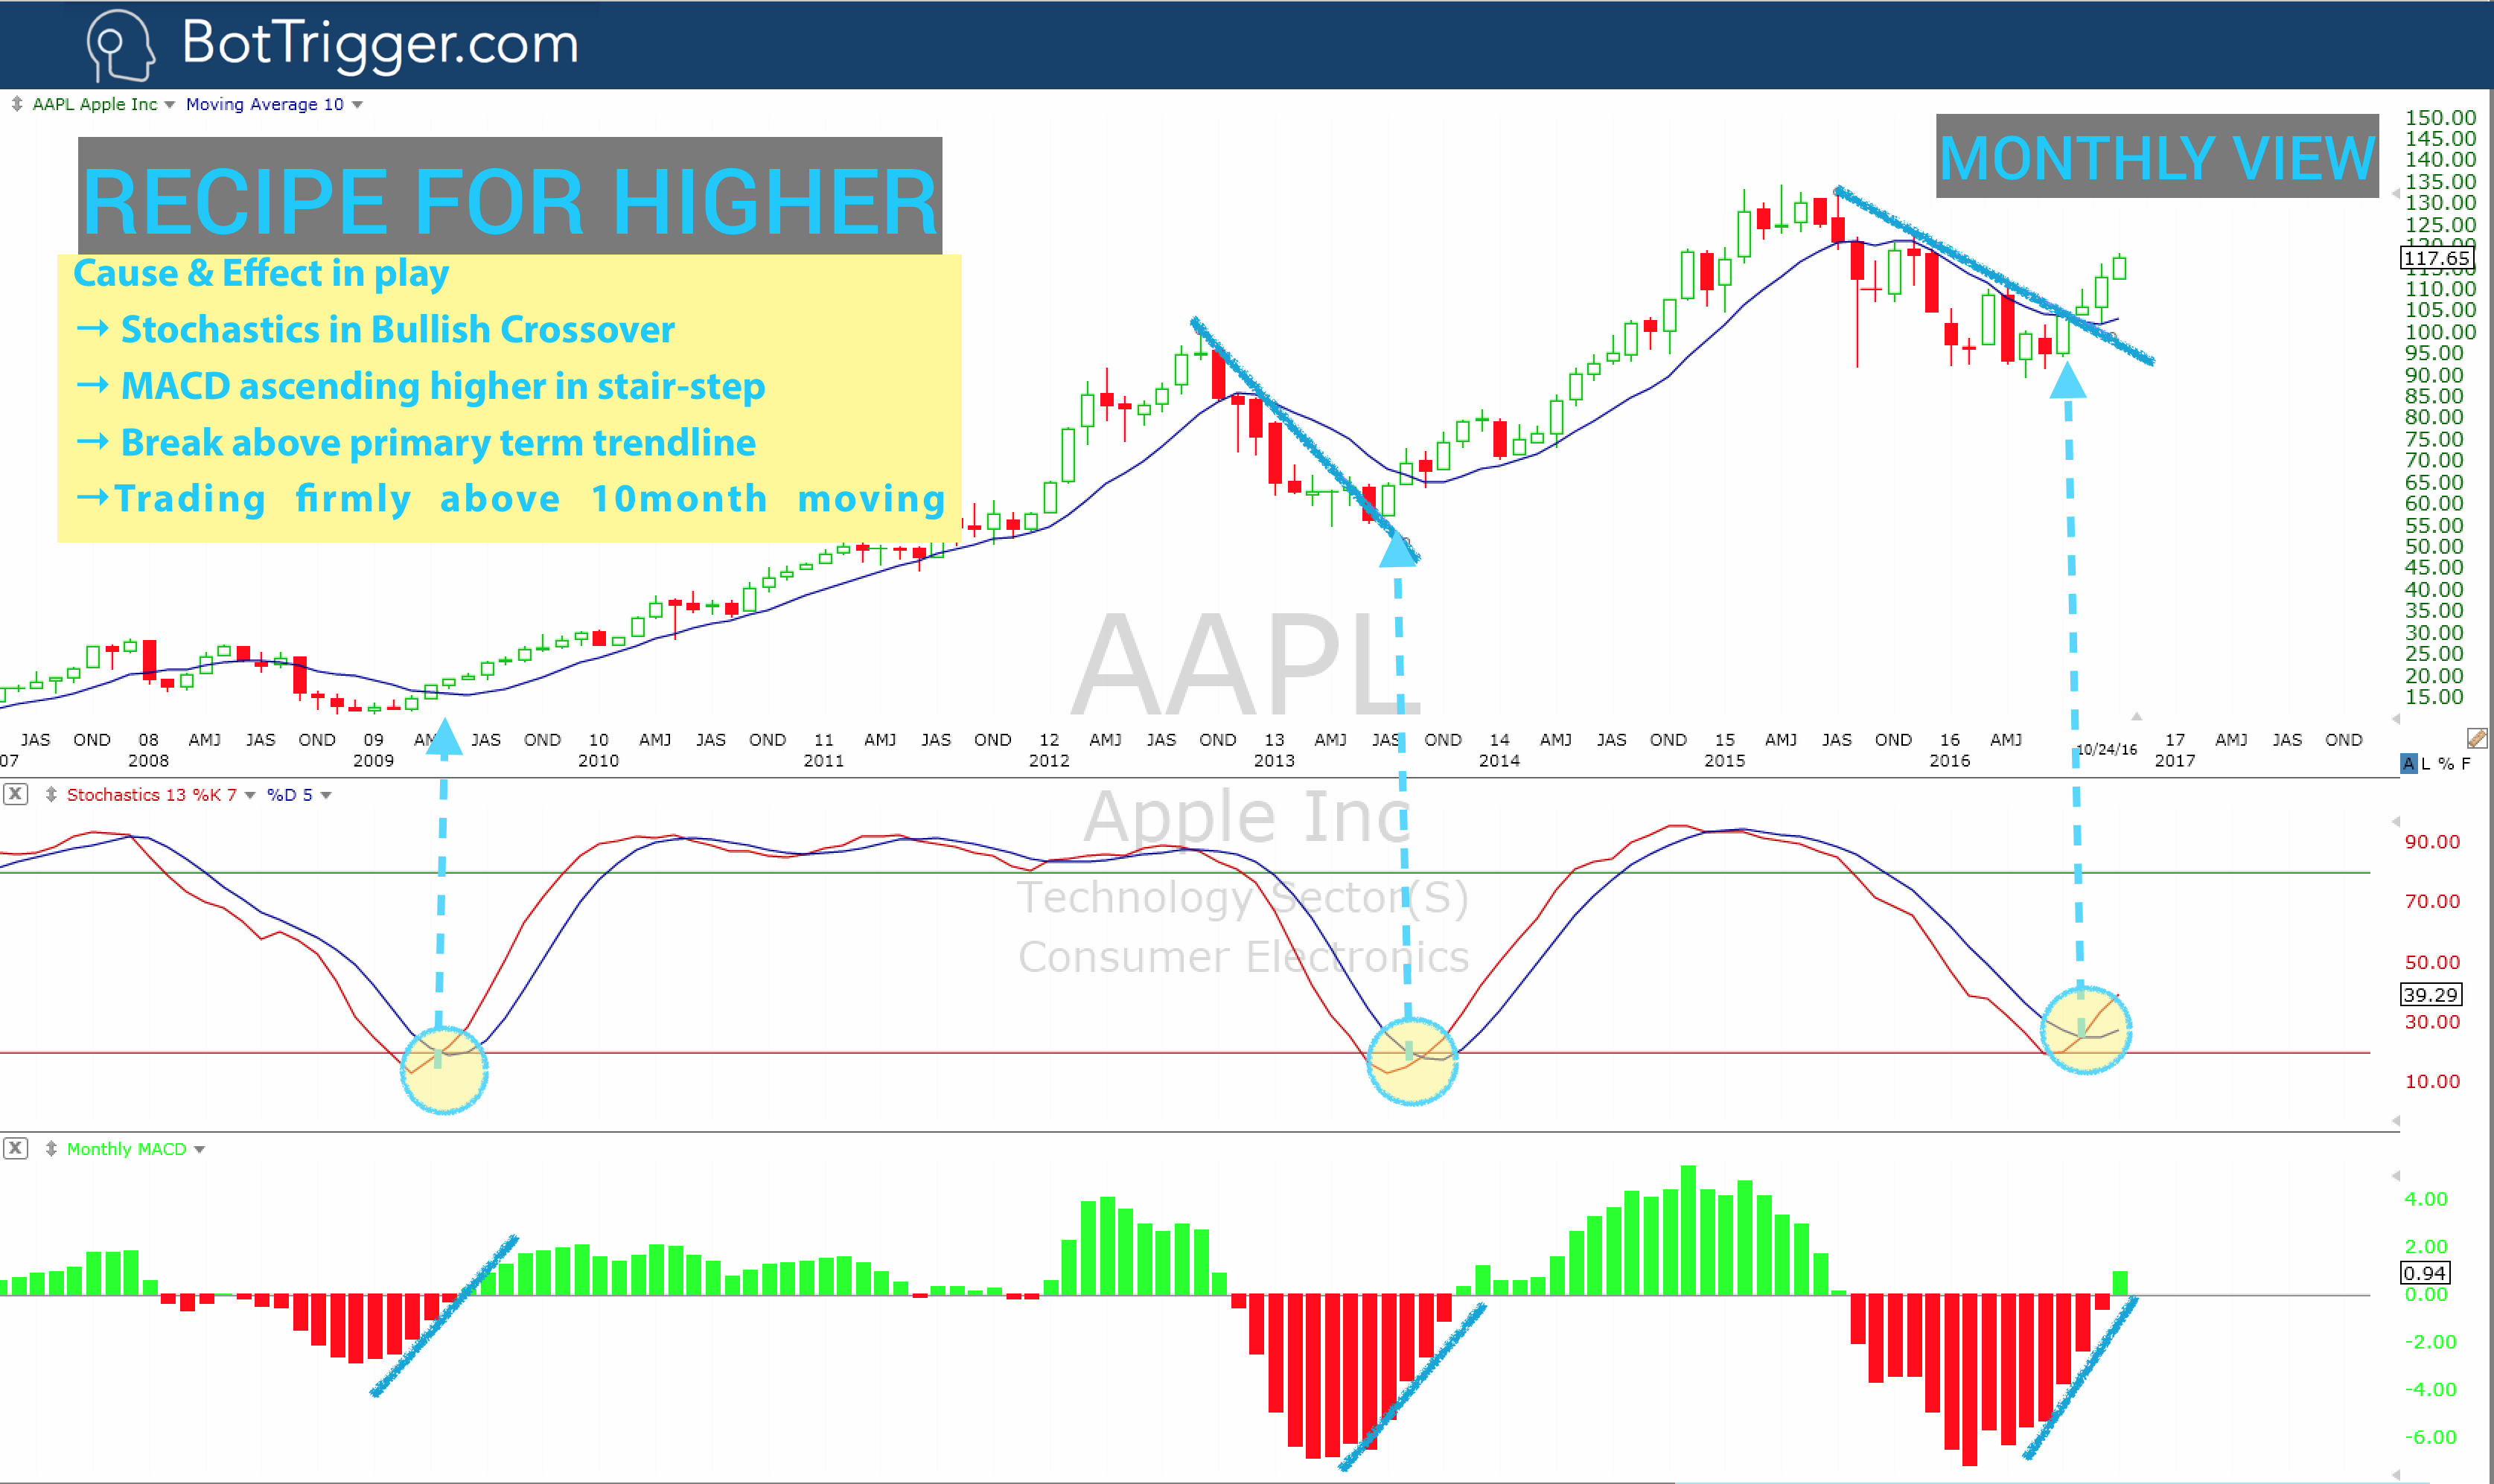 AAPL - Oct 24 Monthly